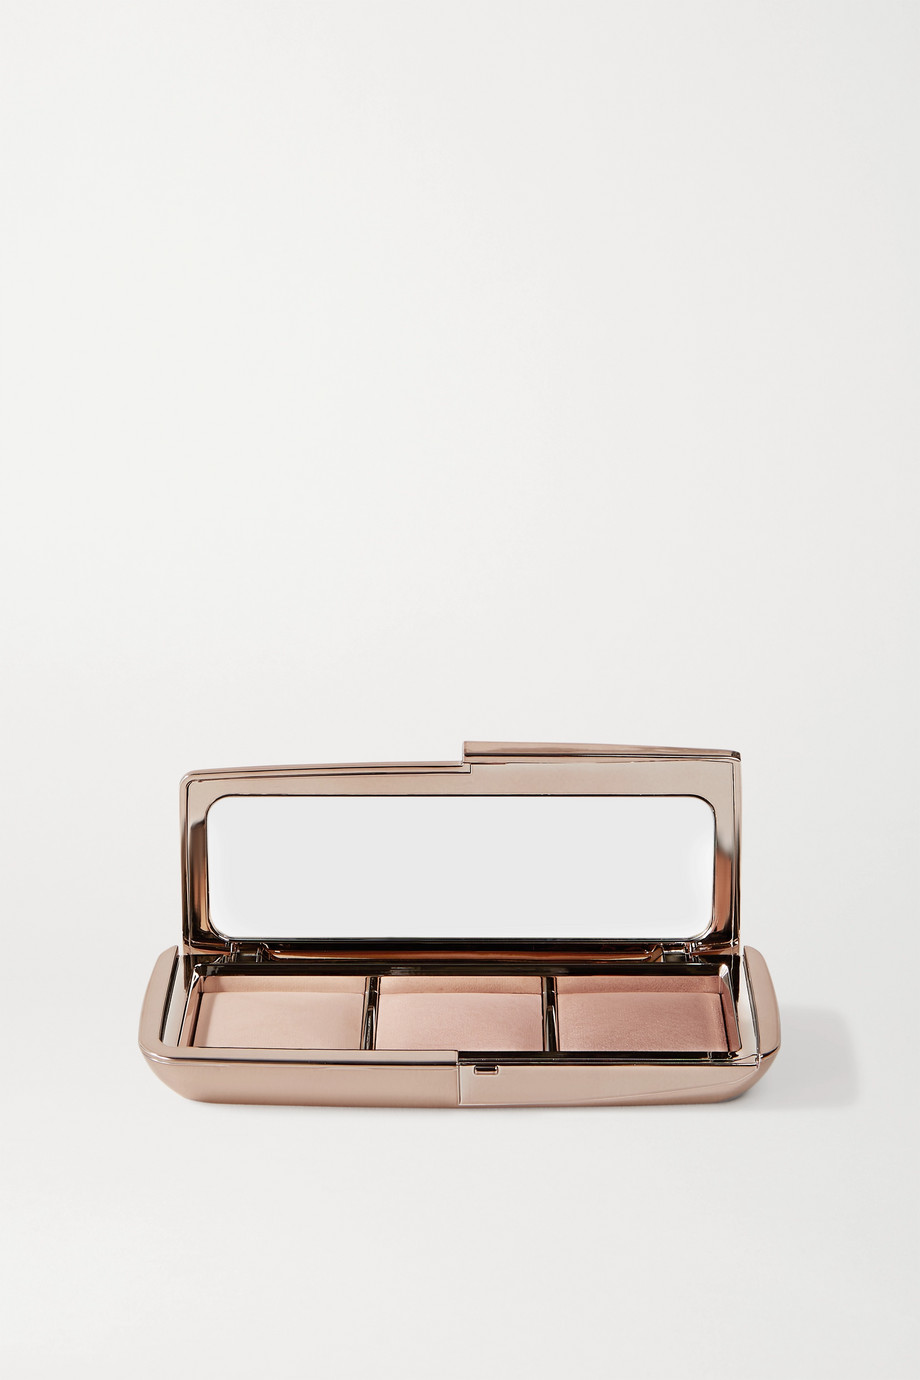 Hourglass Ambient Lighting Palette – Volume II – Puderpalette